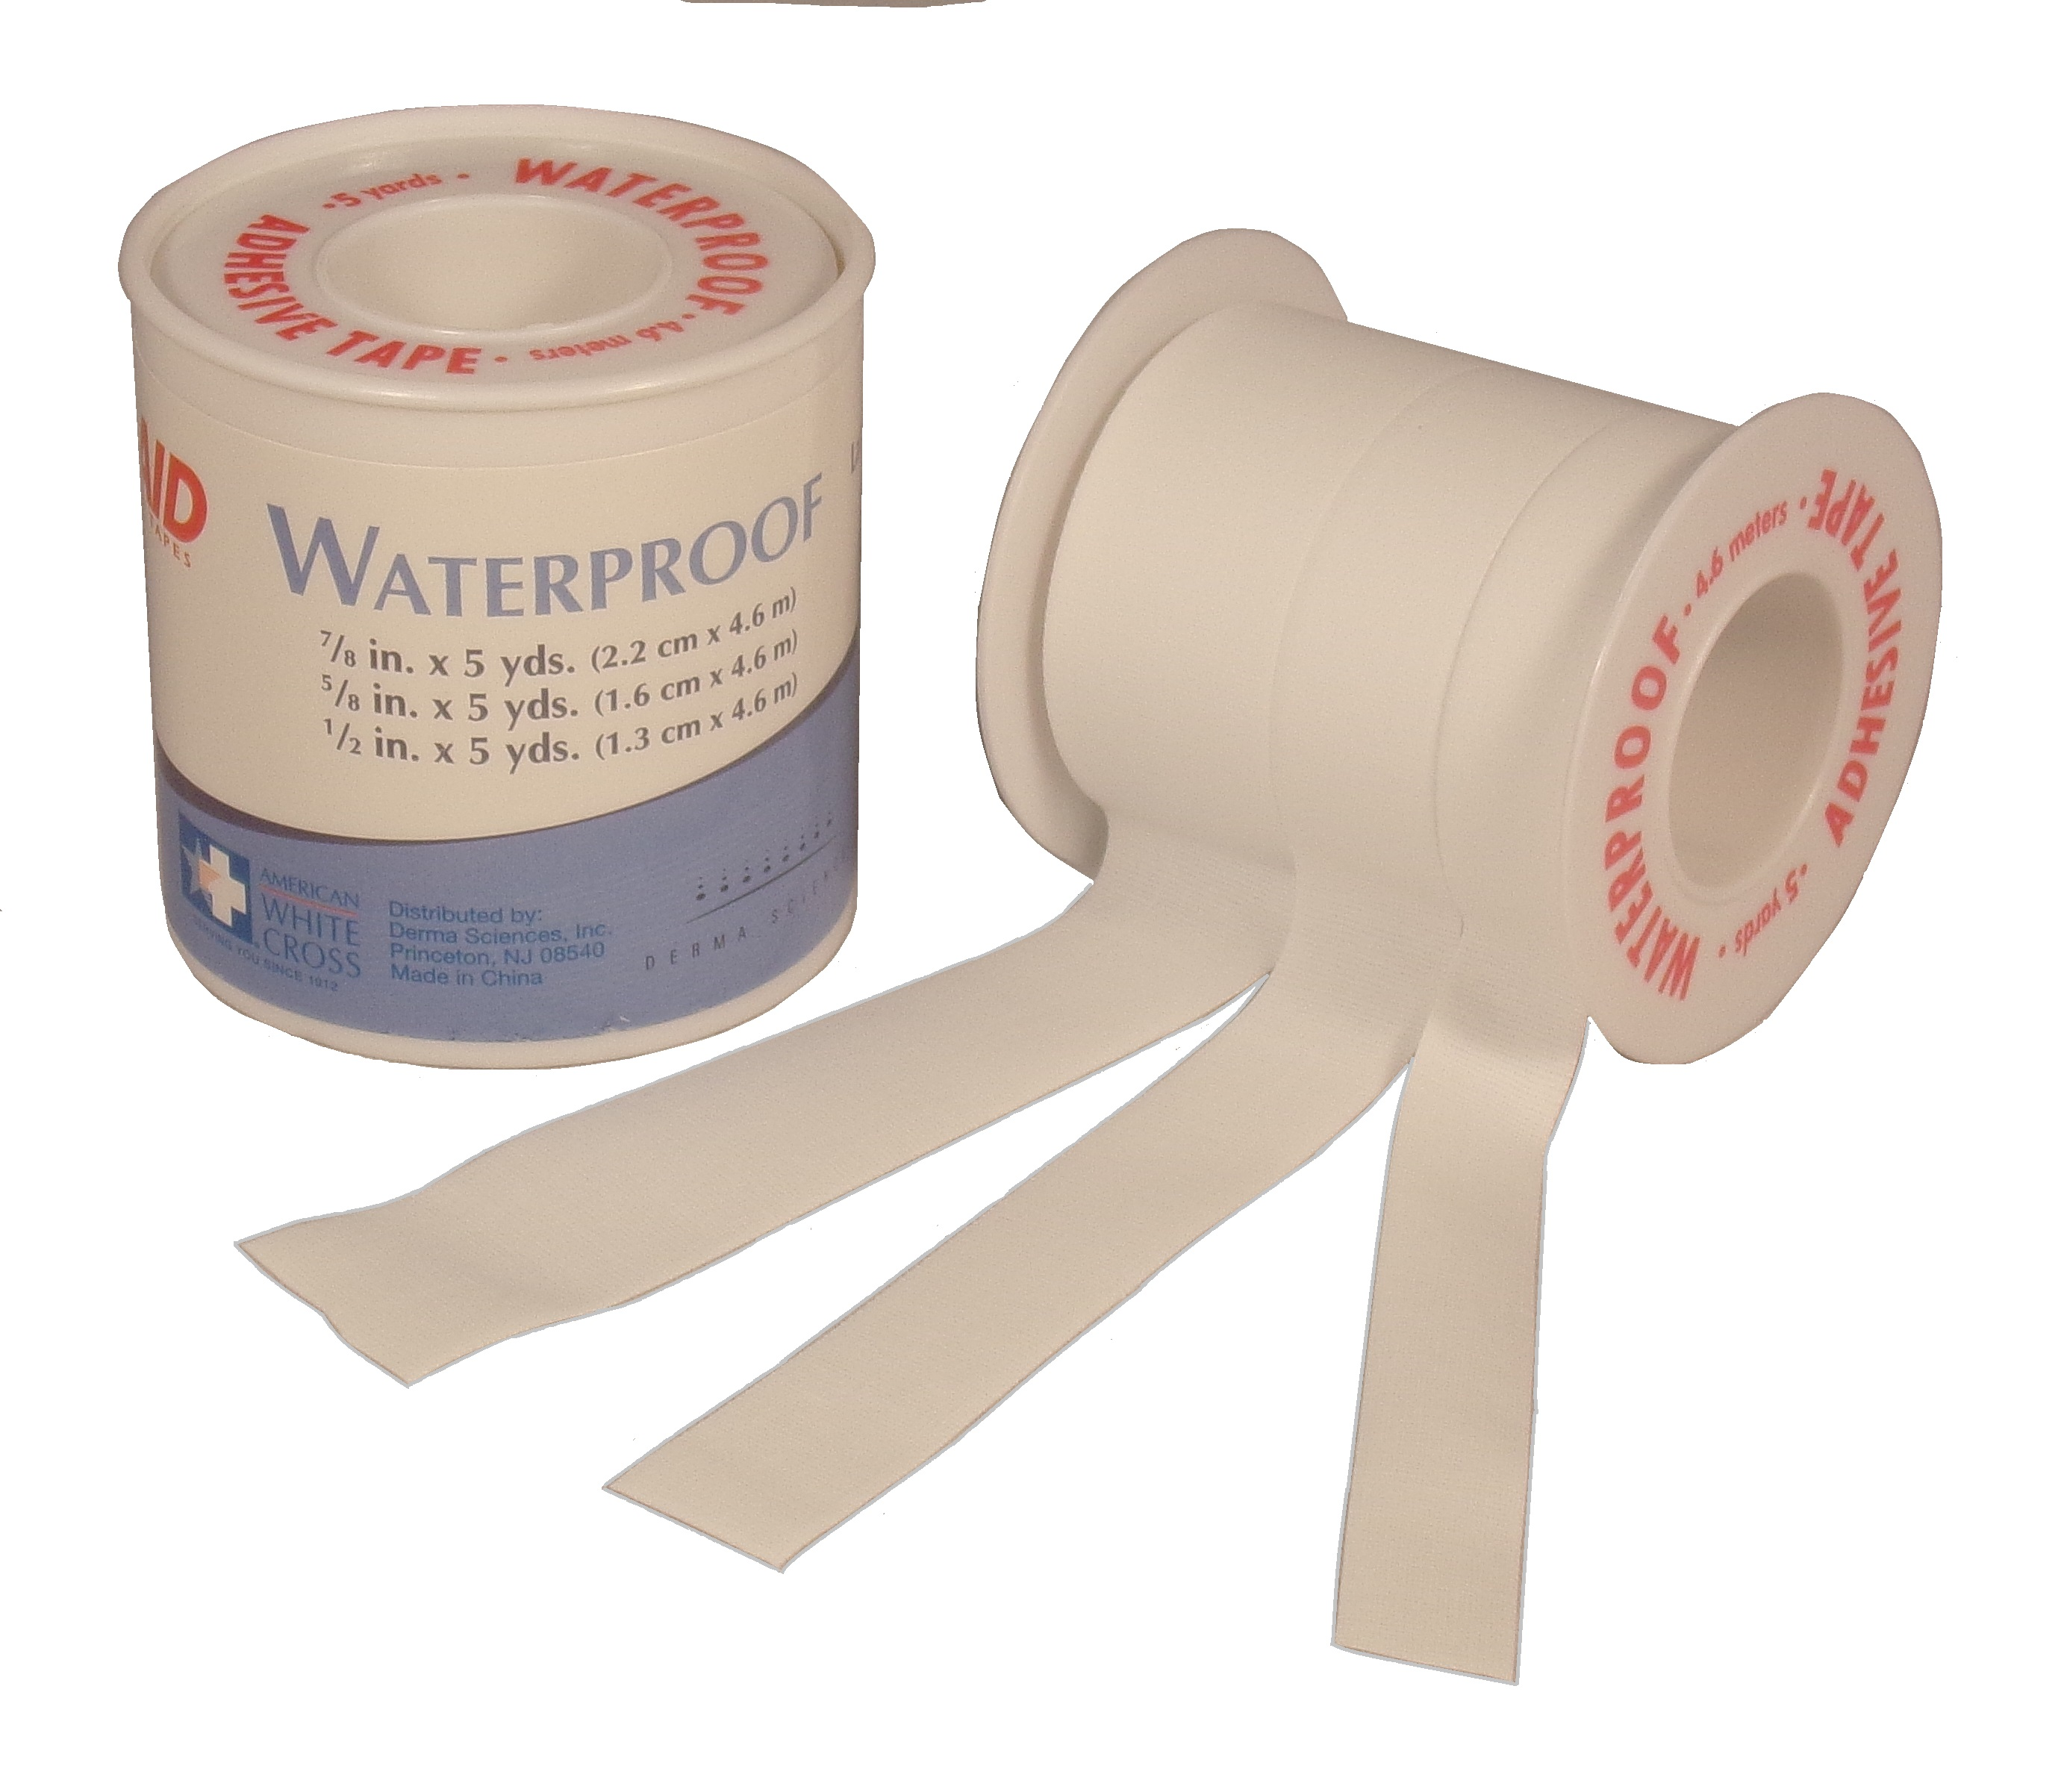 750004-tri-cut-waterproof-tape-white.jpg